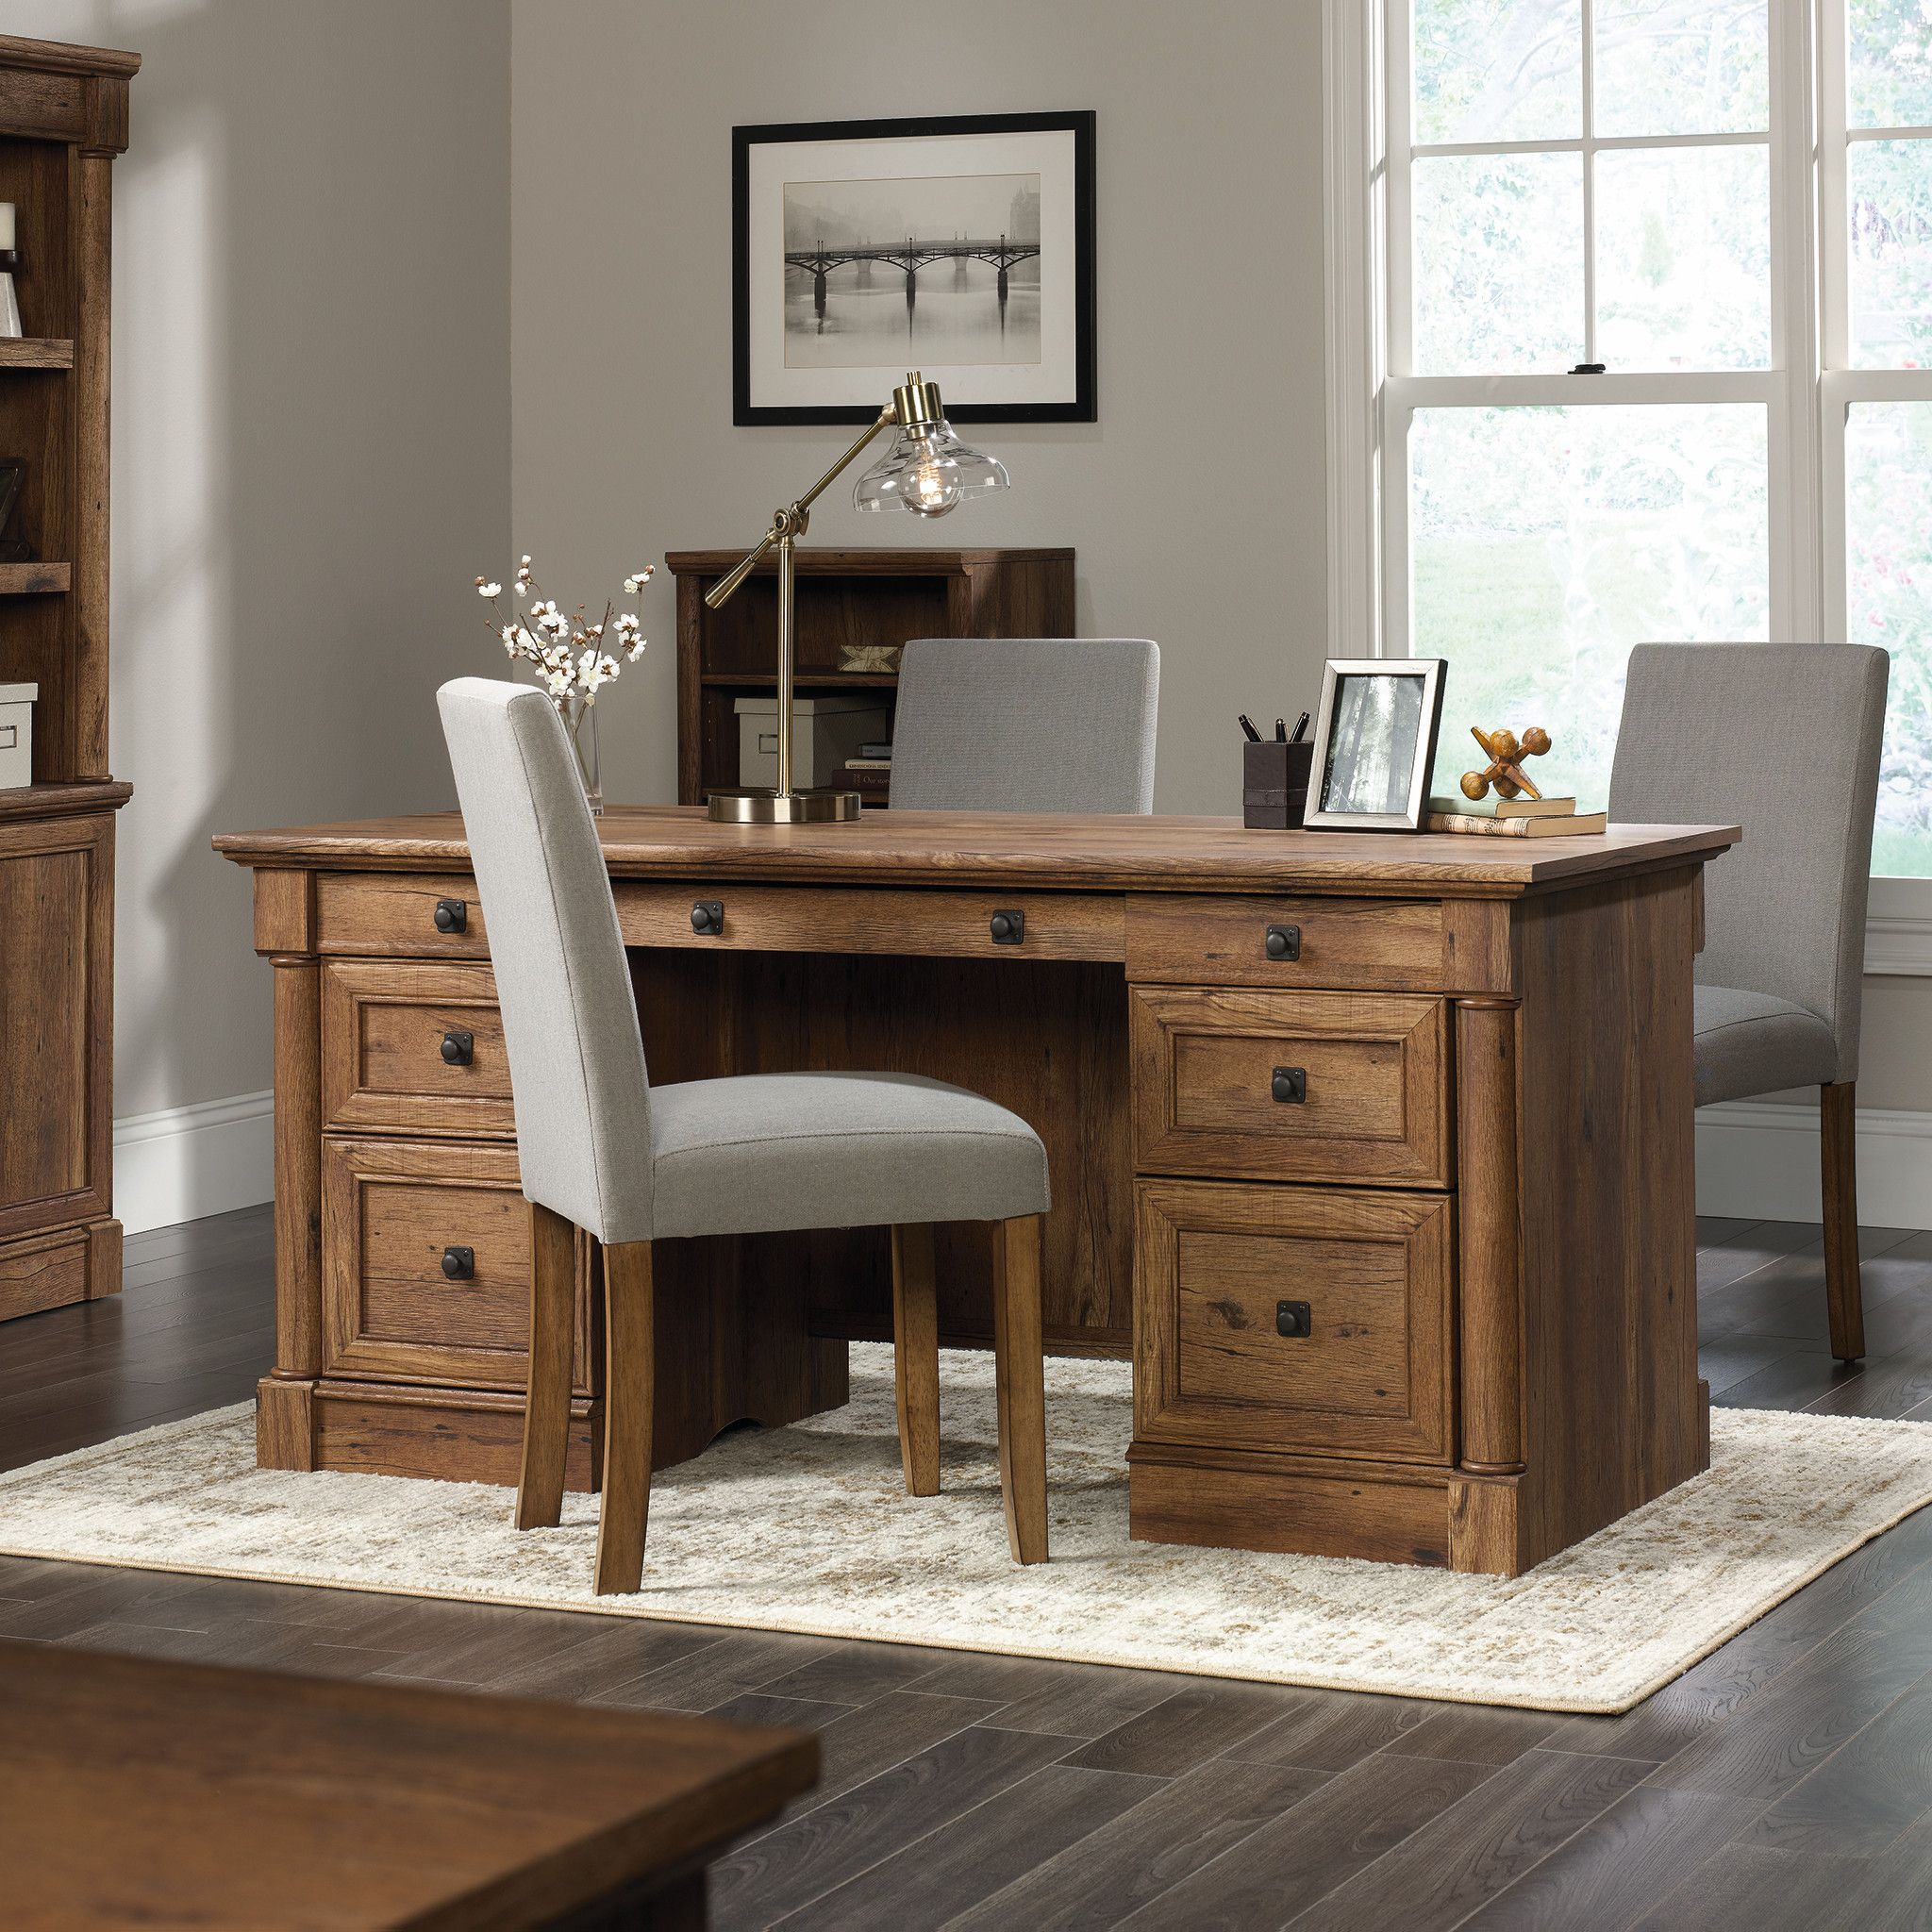 Darby home co sagers executive desk